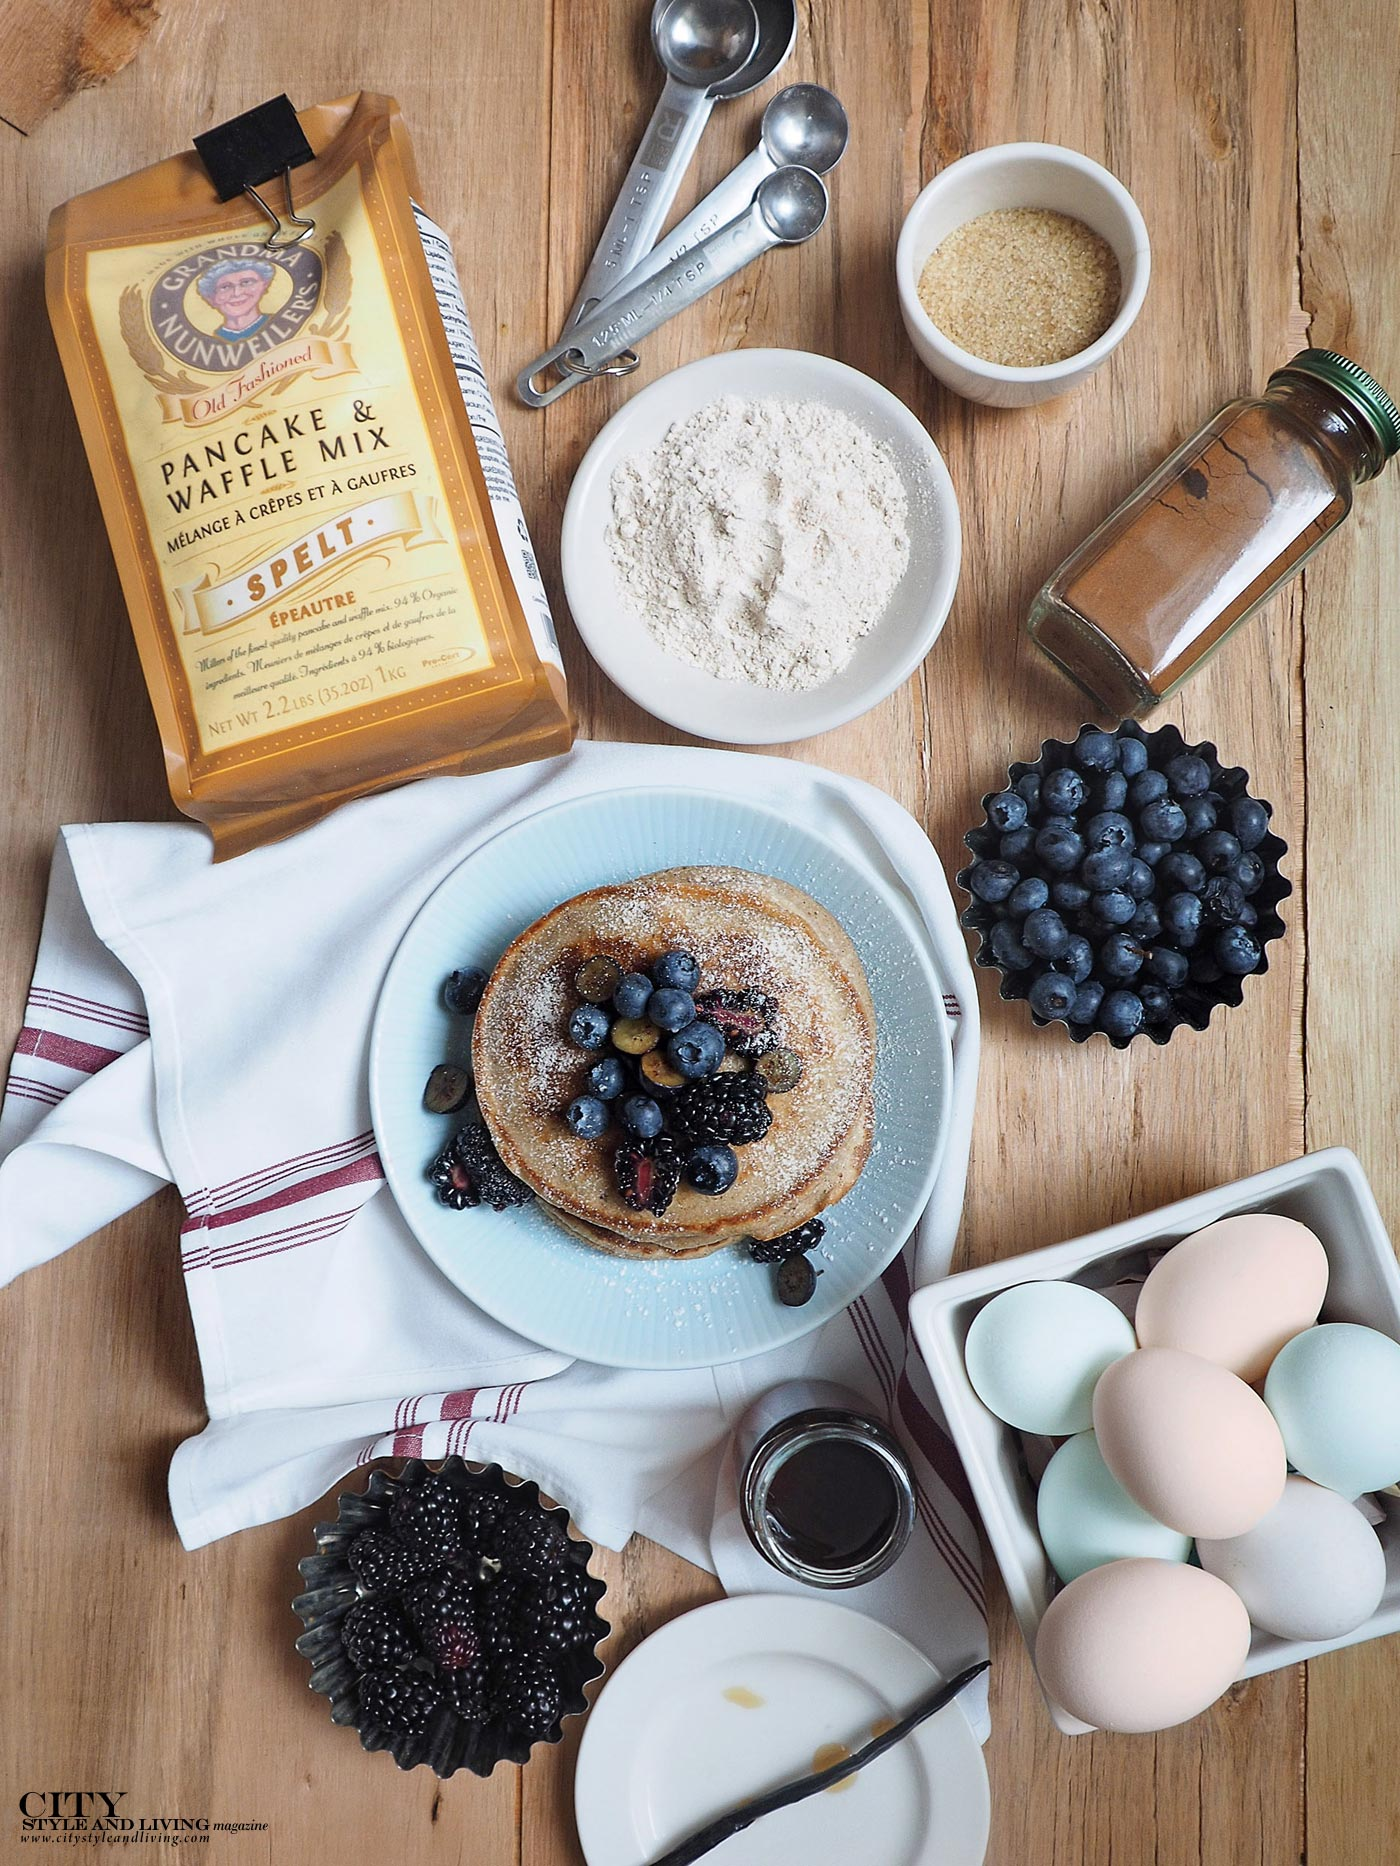 City Style and Living Magazine Nunweilers Pancake Mix recipe and 1769 Distillery ingredients